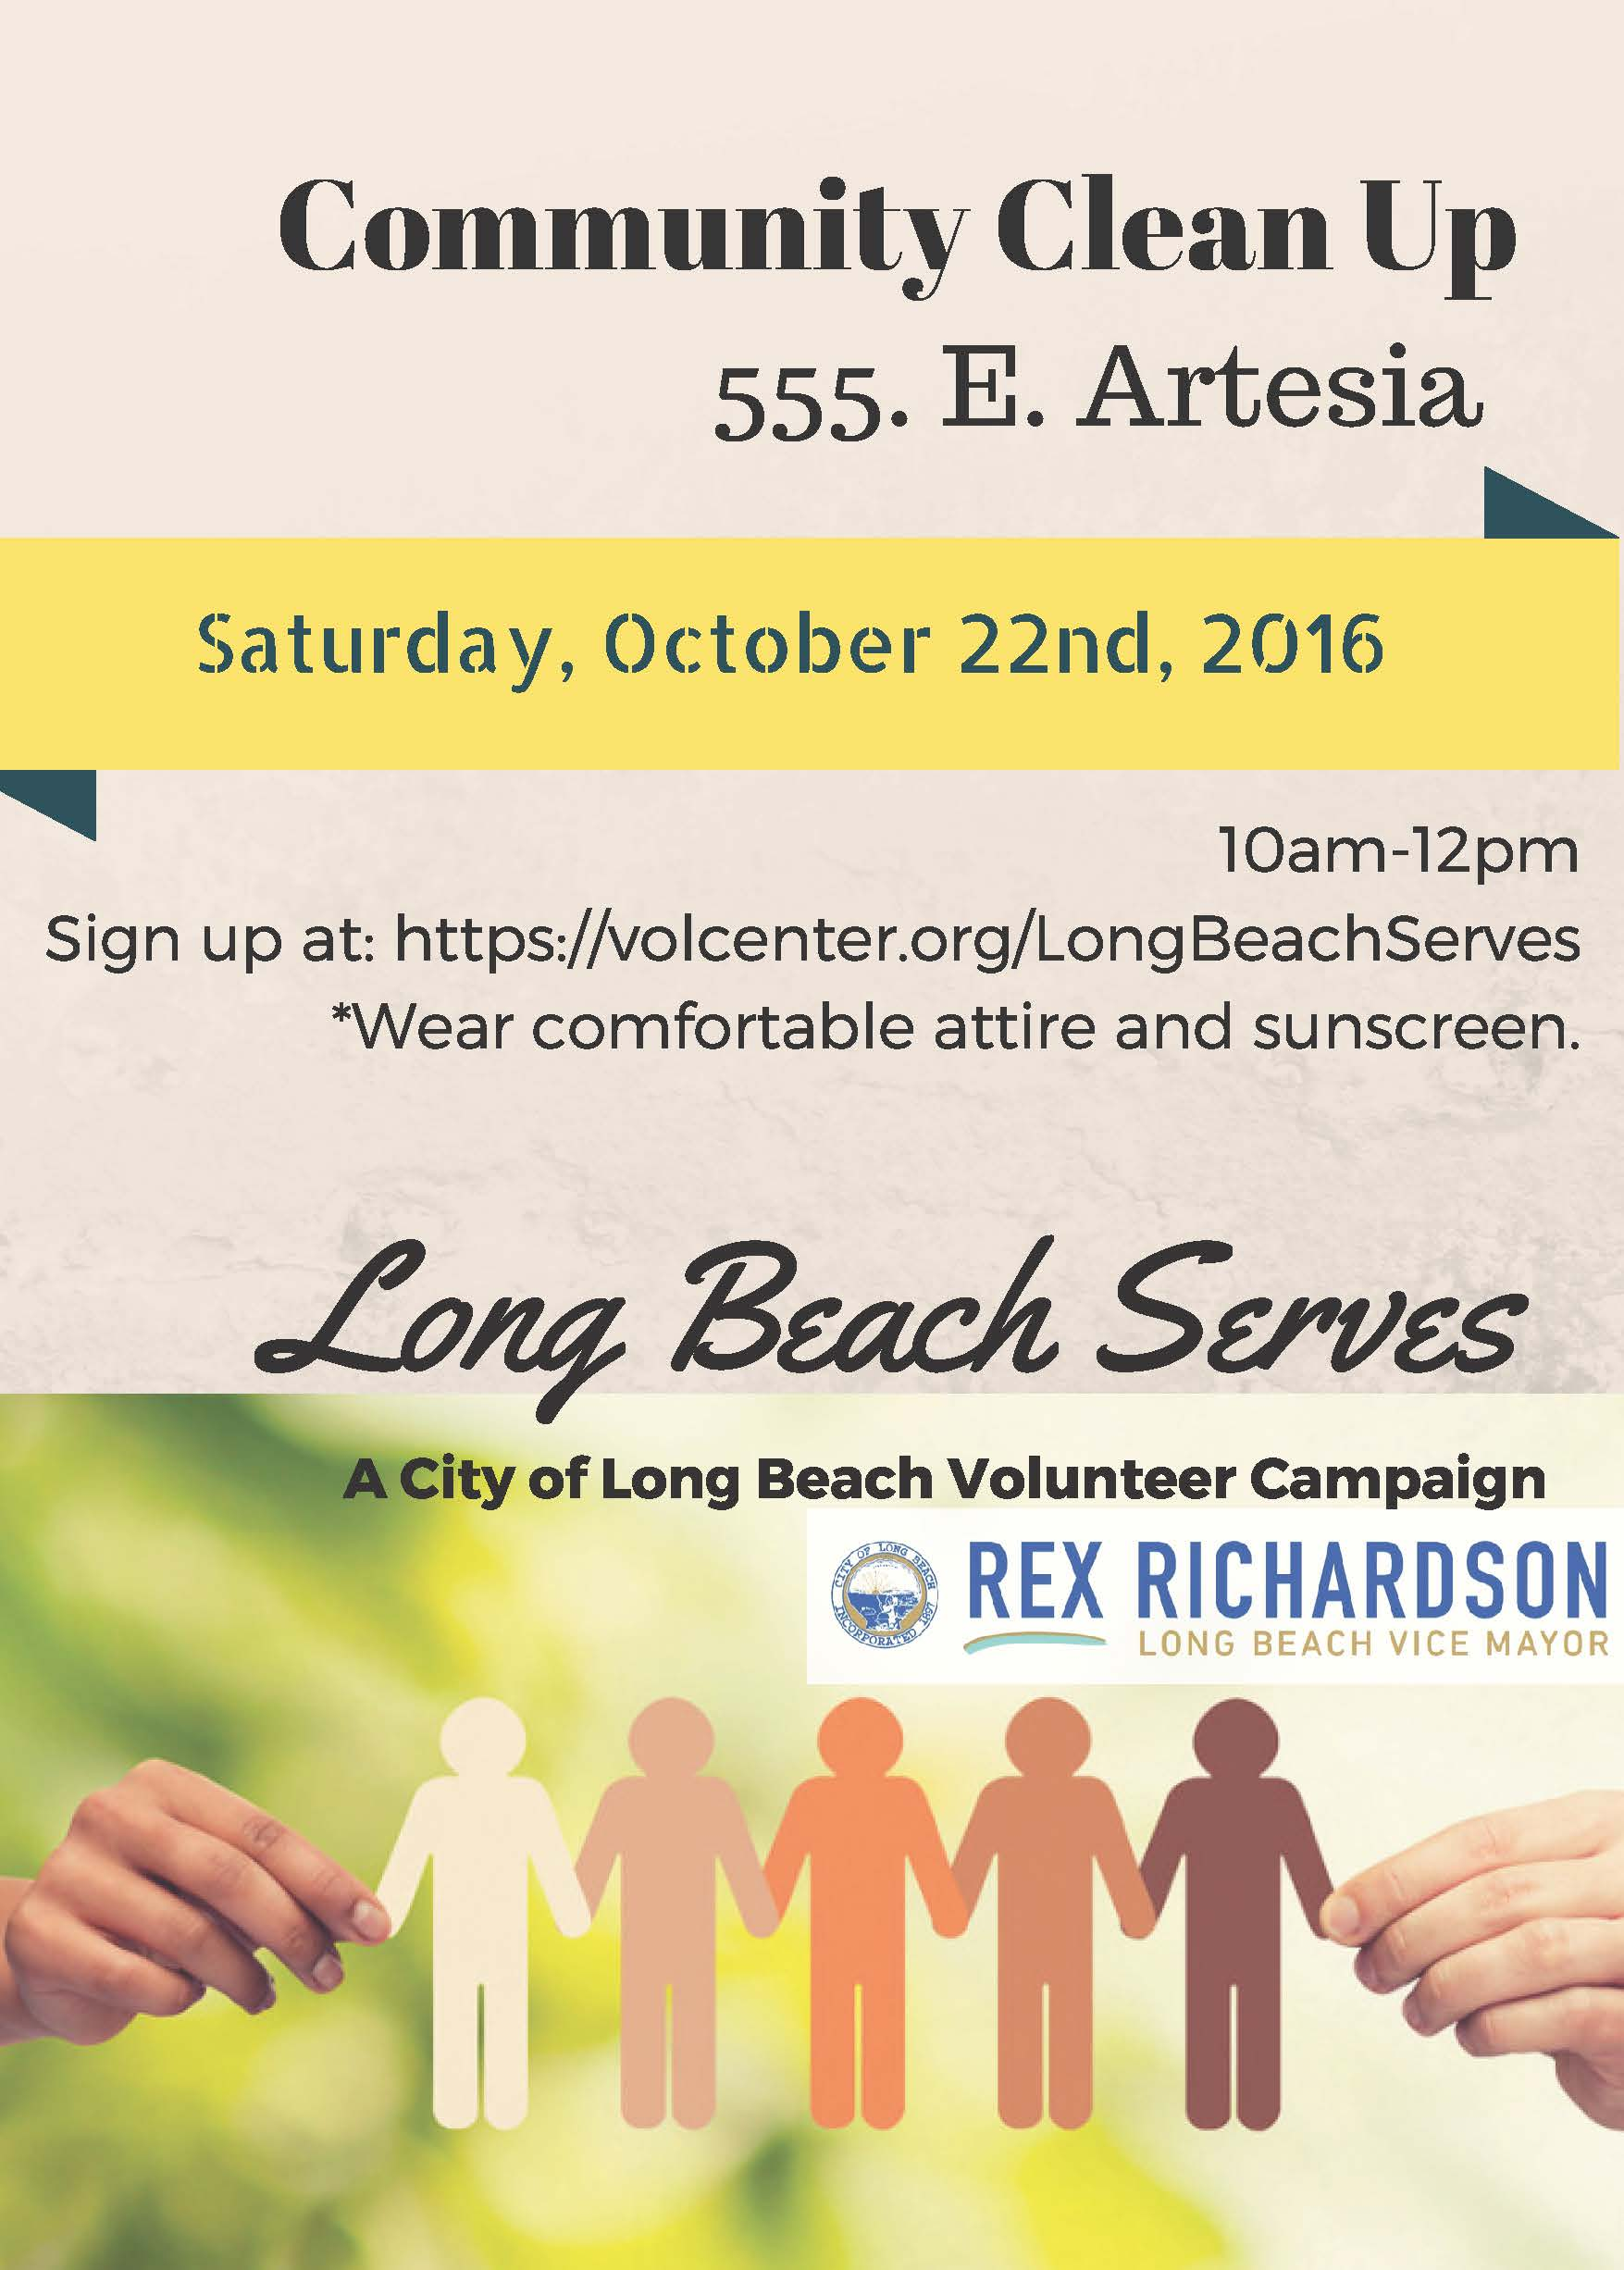 Long_Beach_Serves_Day_of_Service_10.22.16.jpg